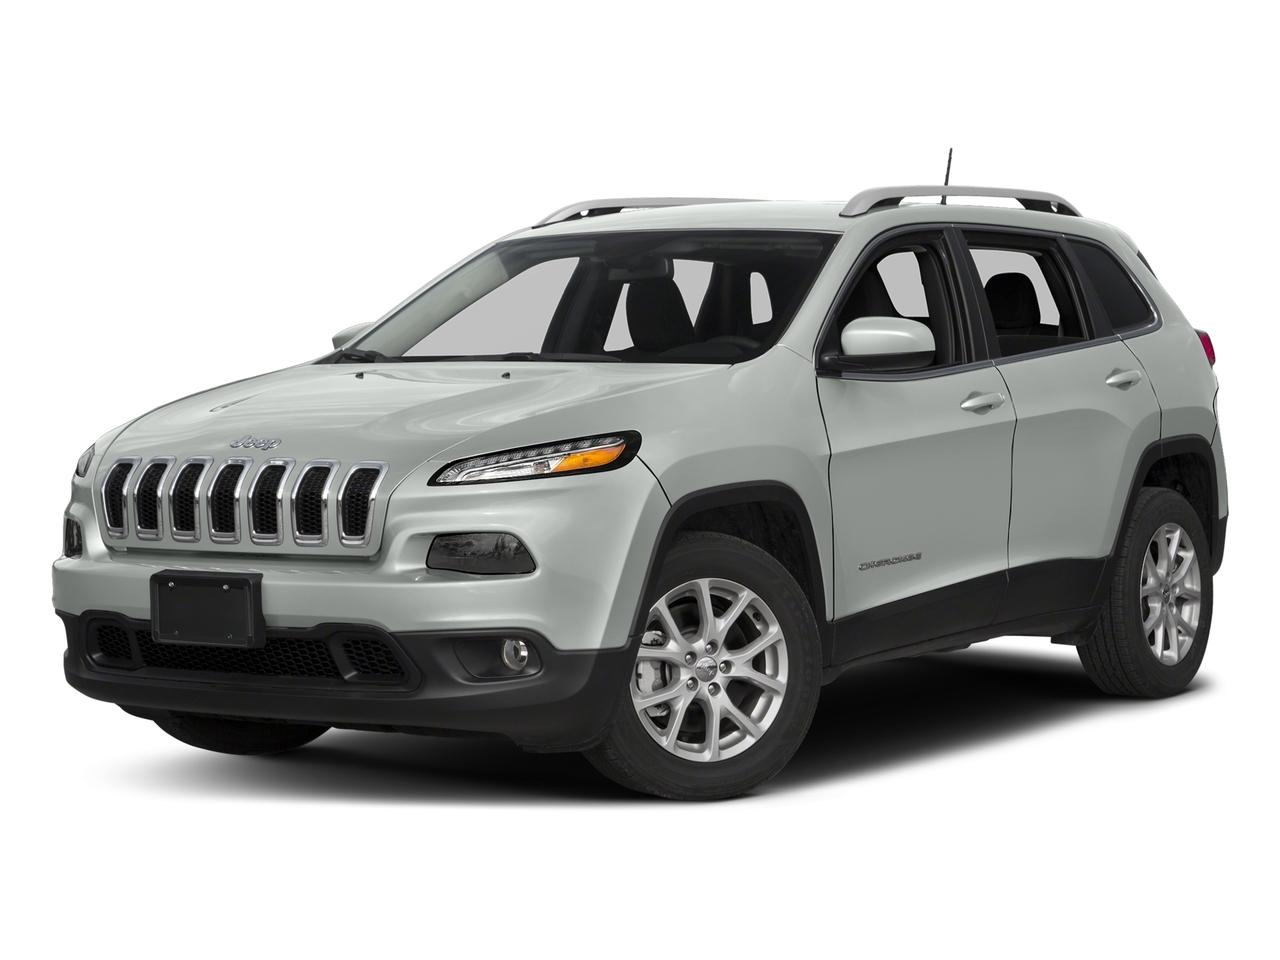 2018 Jeep Cherokee Vehicle Photo in CHARLESTON, SC 29407